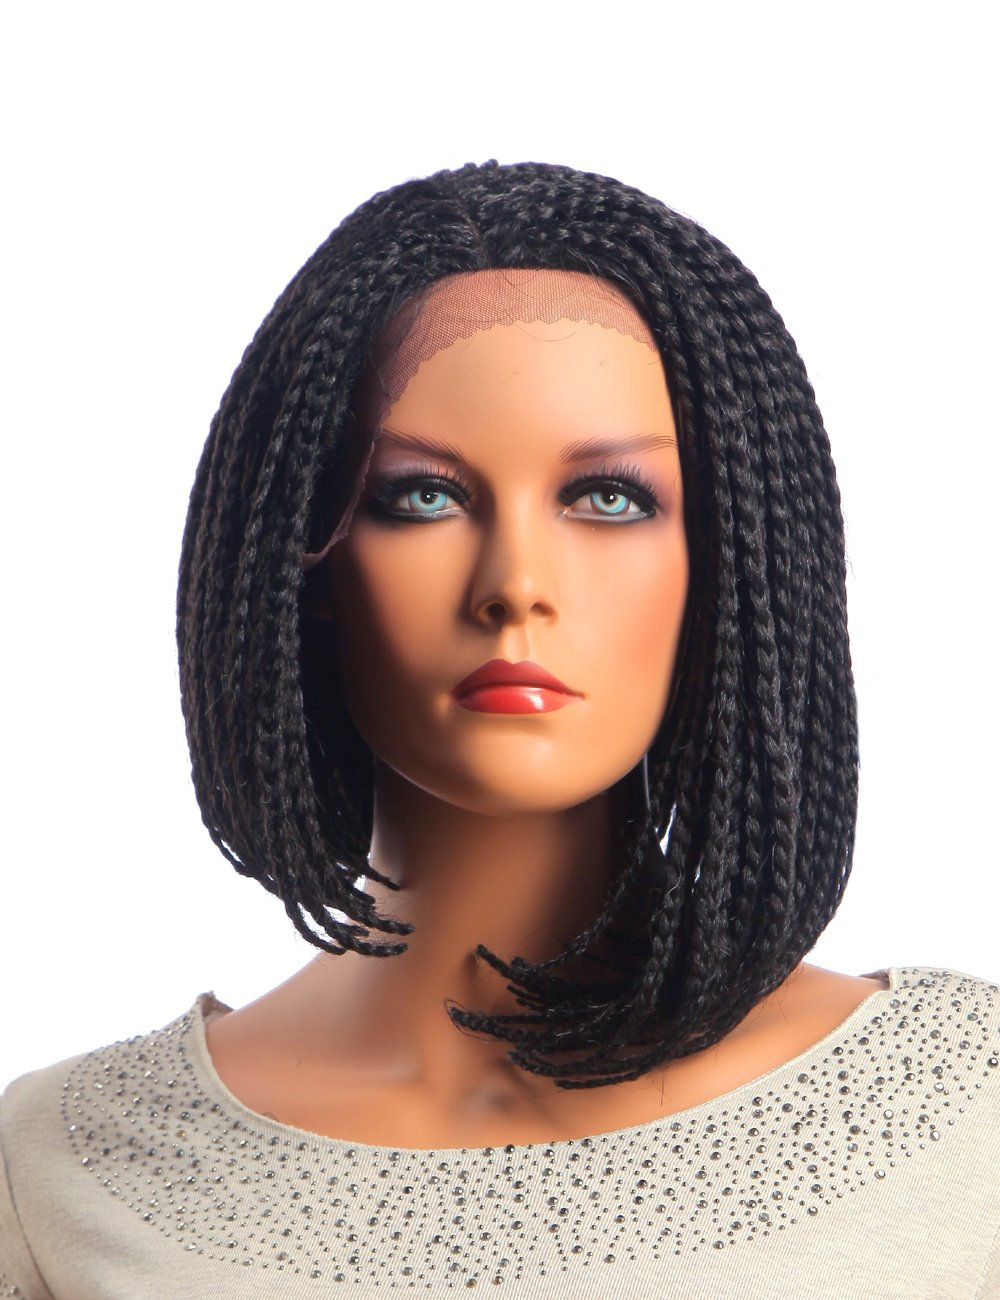 Ufine Straight Bob Box Braid Wig Realistic Baby Hair Synthetic Braided Front Lace Wig For Black